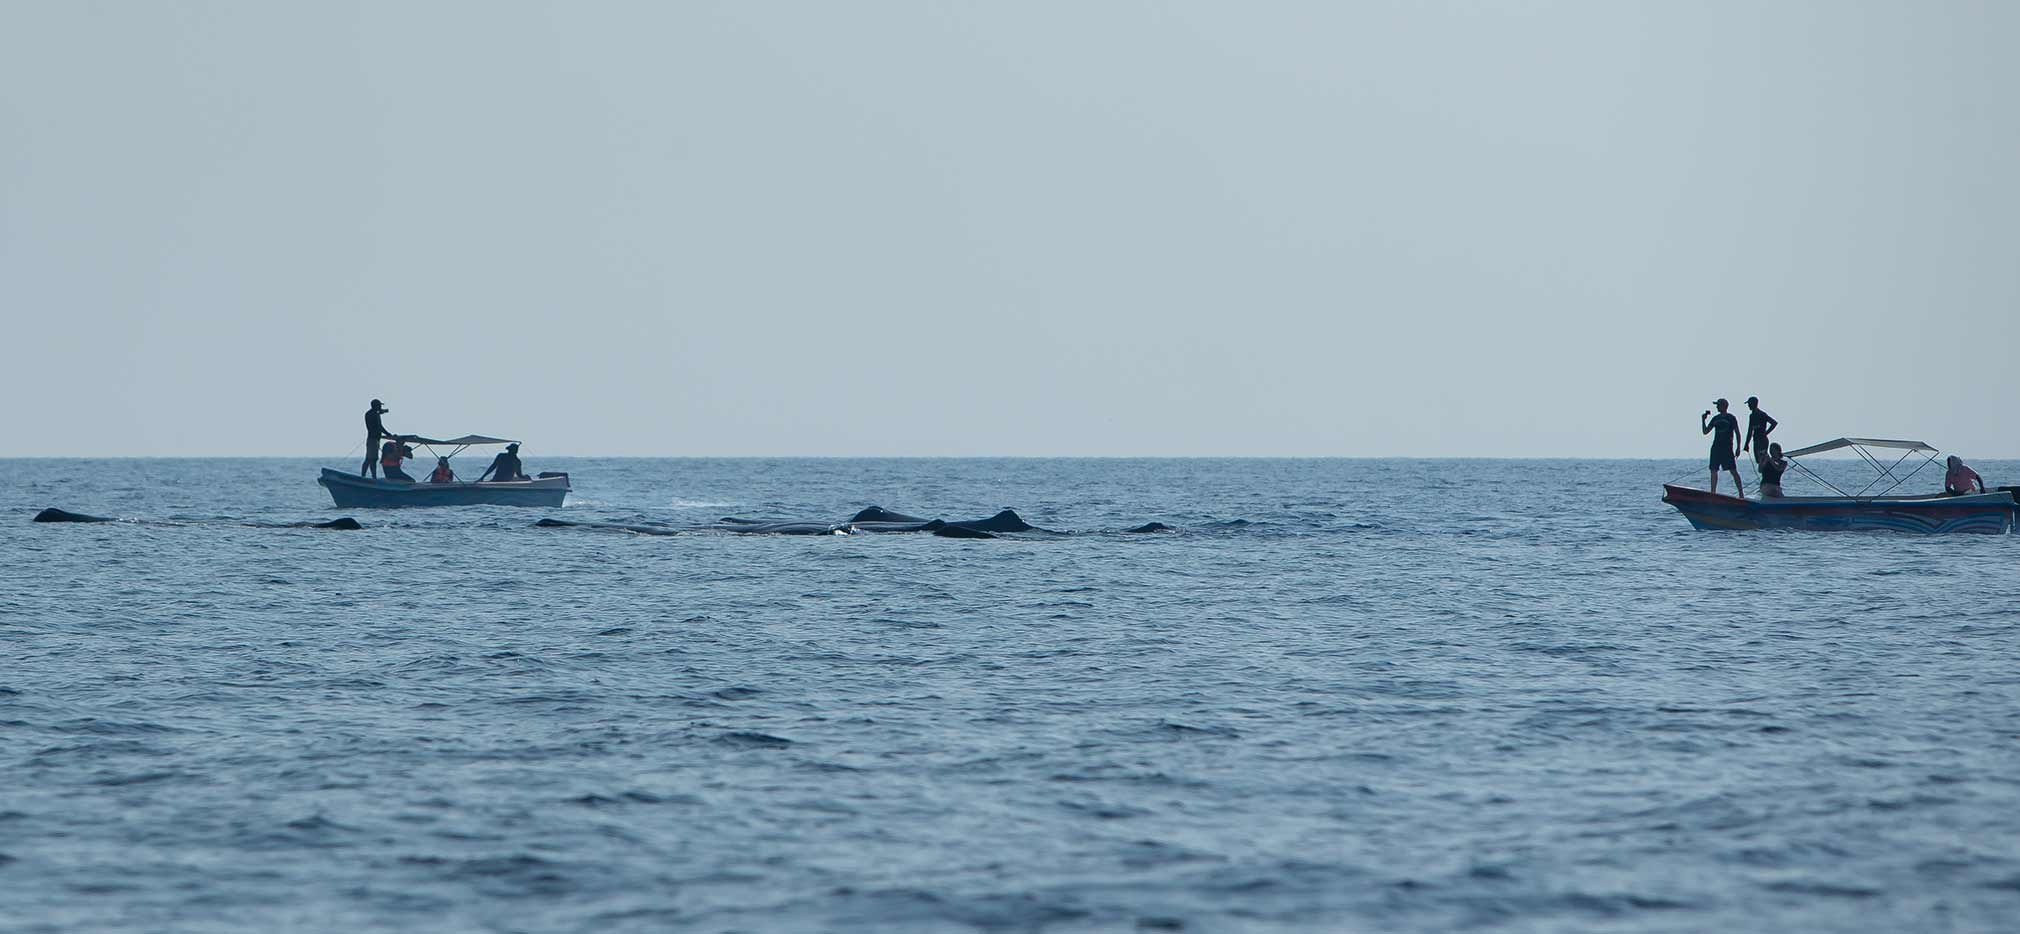 The distinctive fins of sperm whales break the surface